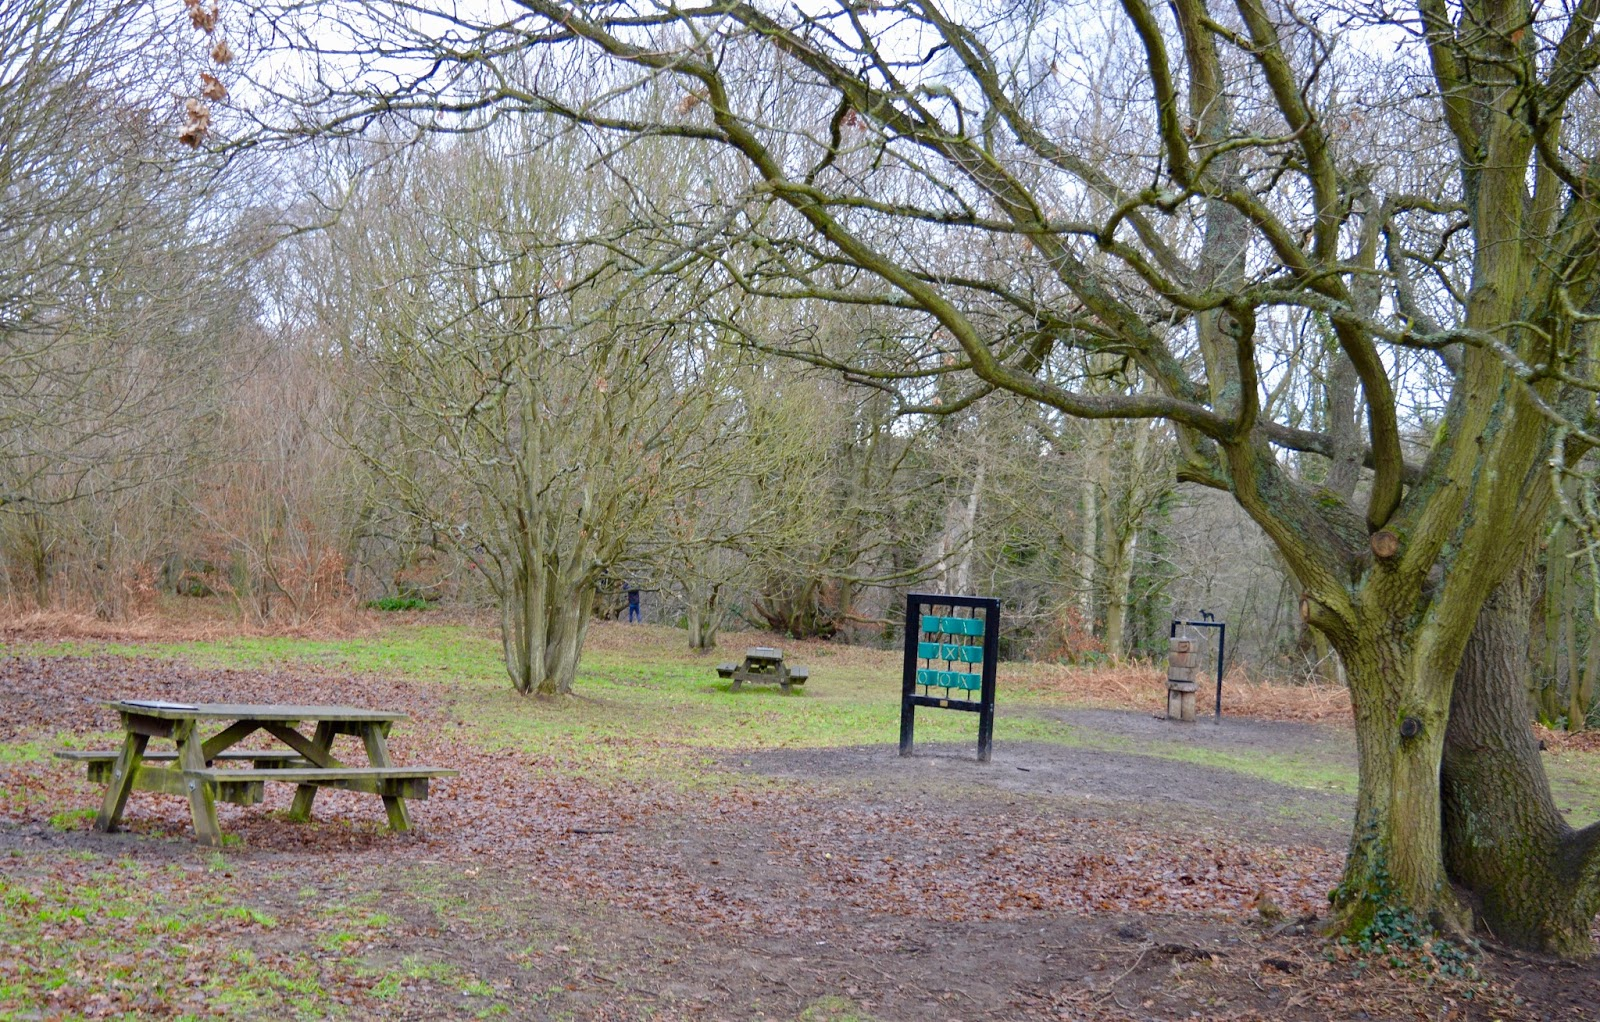 Our Visit to Plessey Woods - A FREE day out in Northumberland. It was very muddy and the perfect chance for Harry to put his GORE-TEX shoes through their paces - picnic tables and noughts and crosses